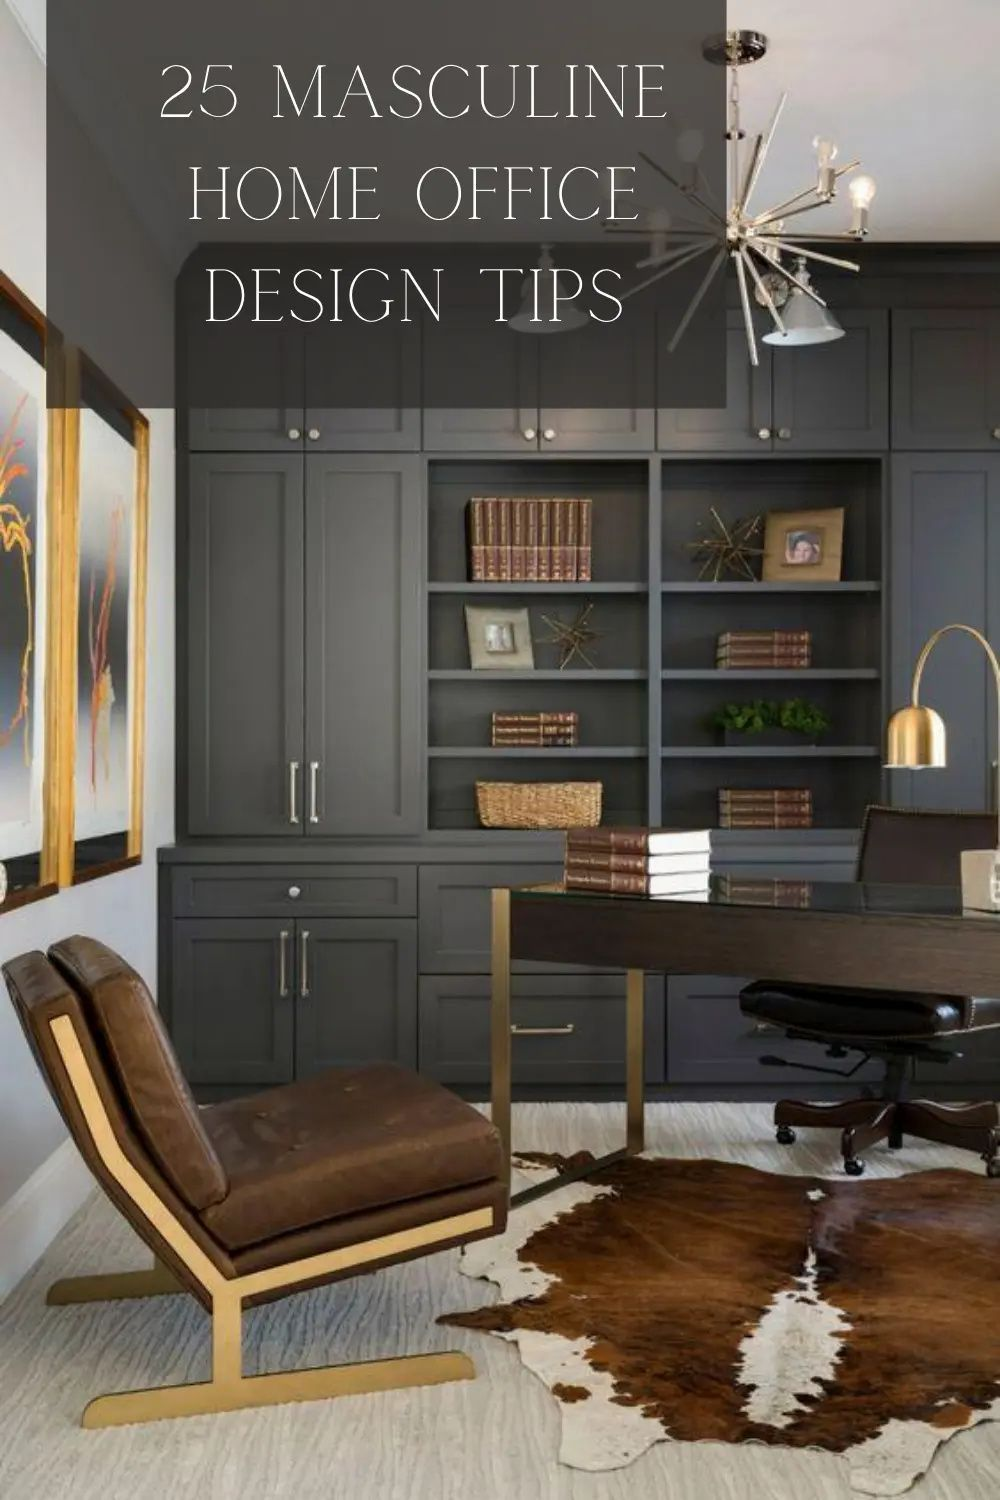 25 Ultimate Masculine Home Office Ideas In 2020 Masculine Home Offices Home Office Decor Home Office Design